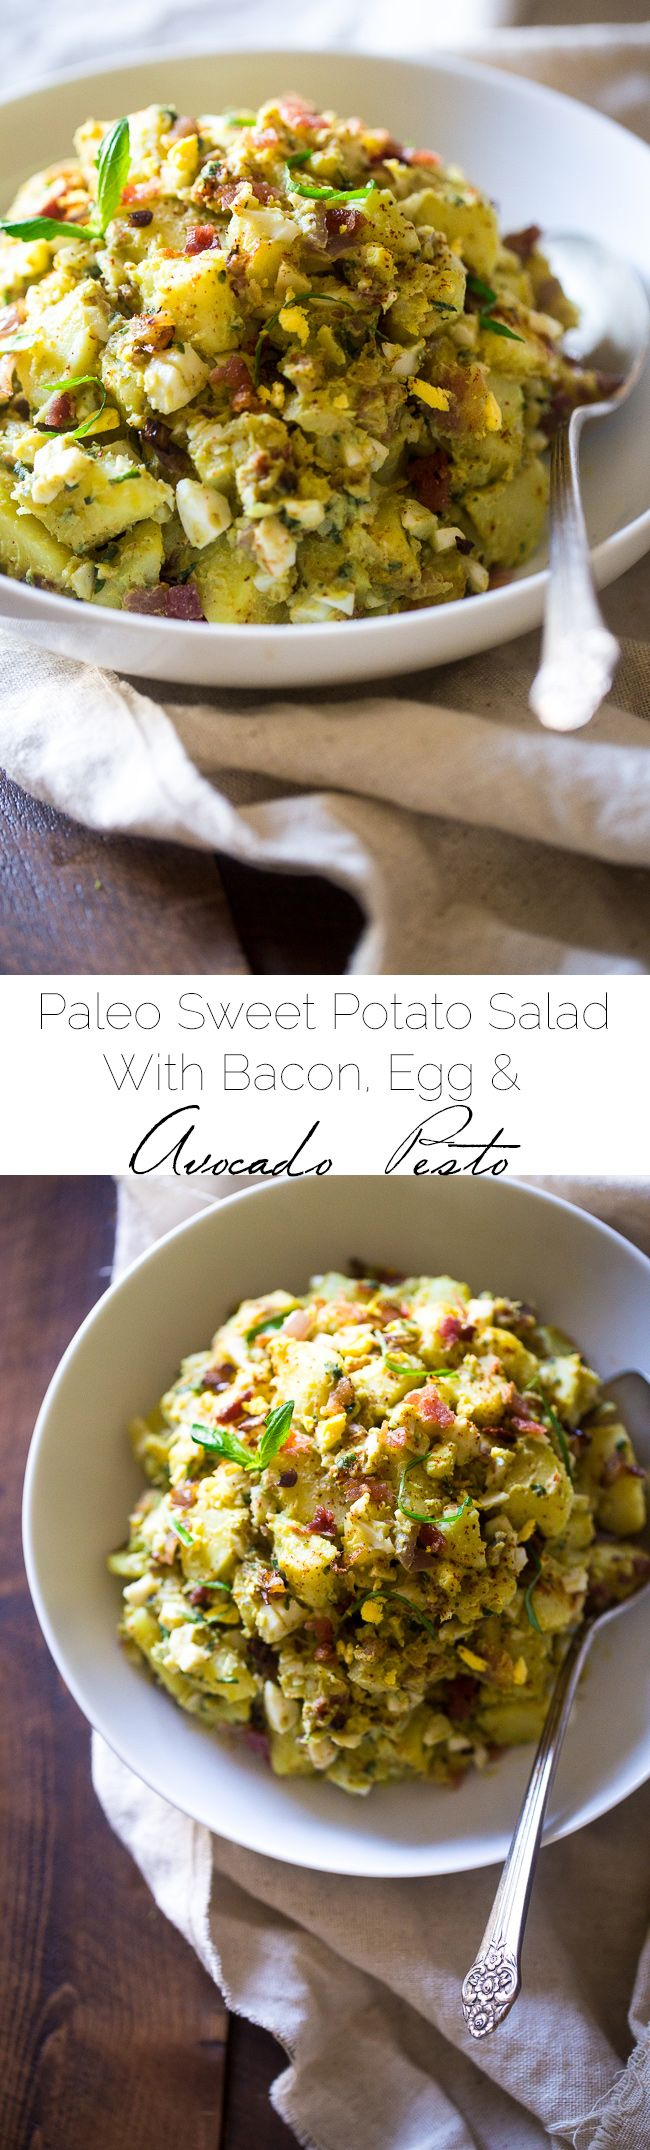 Paleo Sweet Potato Salad with Bacon, Eggs and Avocado Pesto – A healthy side dish that is SUPER creamy, easy to make and always a crowd pleaser! You won't even miss the mayonnaise! | Foodfaithfitness.com | @FoodFaithFit